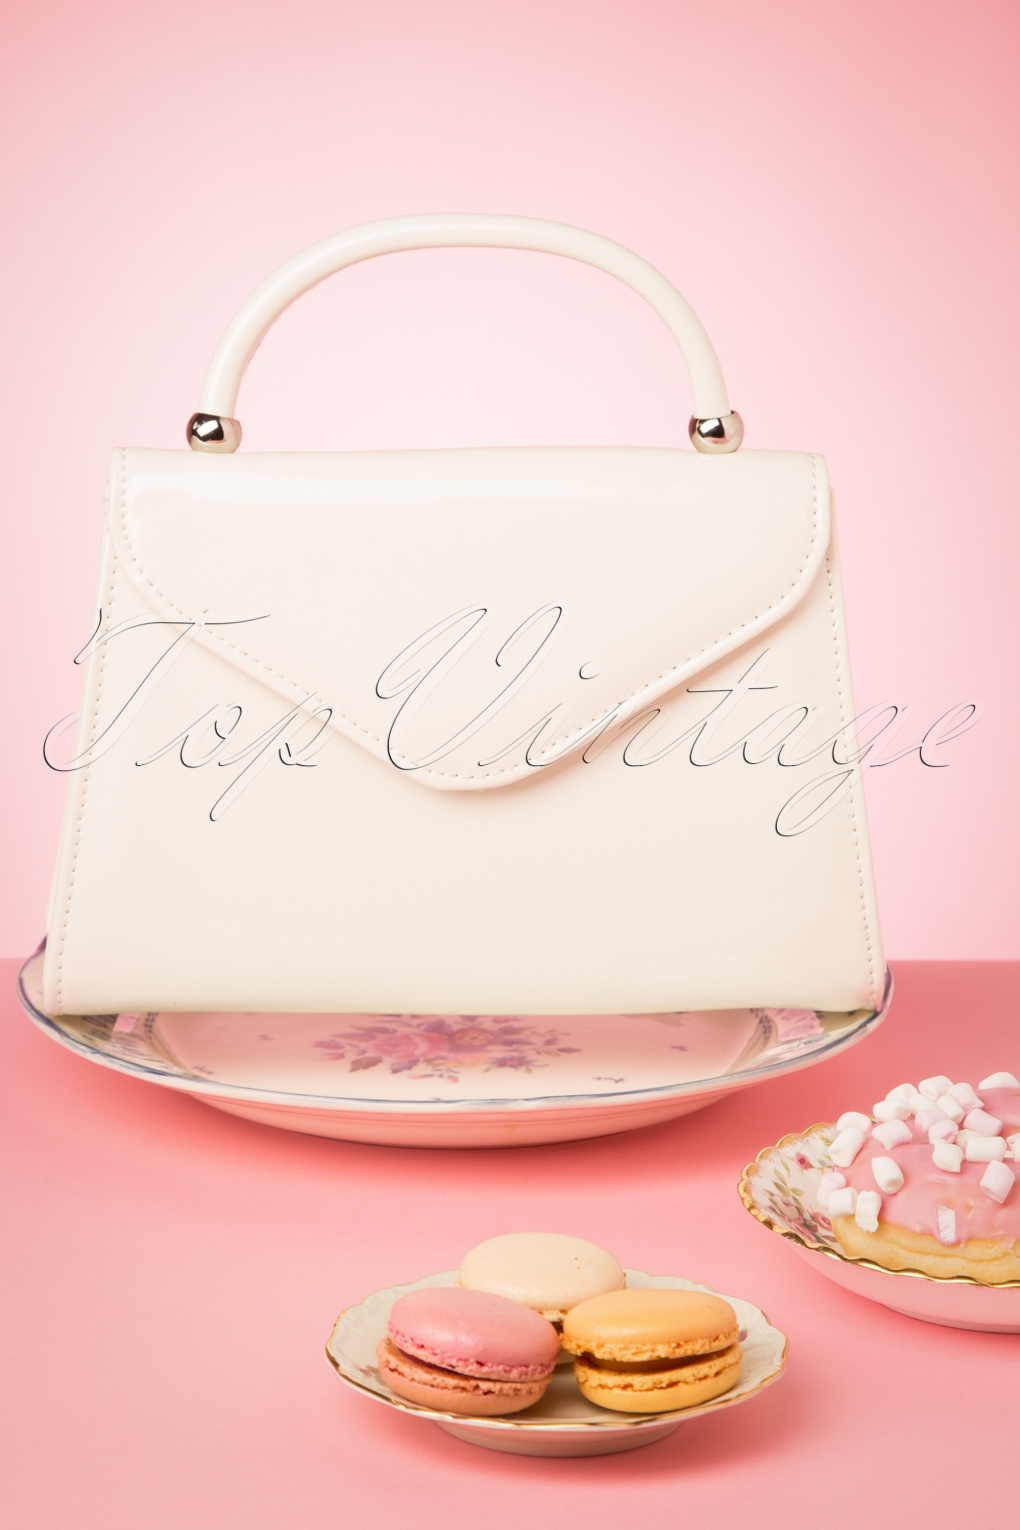 Vintage & Retro Handbags, Purses, Wallets, Bags 60s Lillian Lacquer Flap Bag in Off White �23.08 AT vintagedancer.com